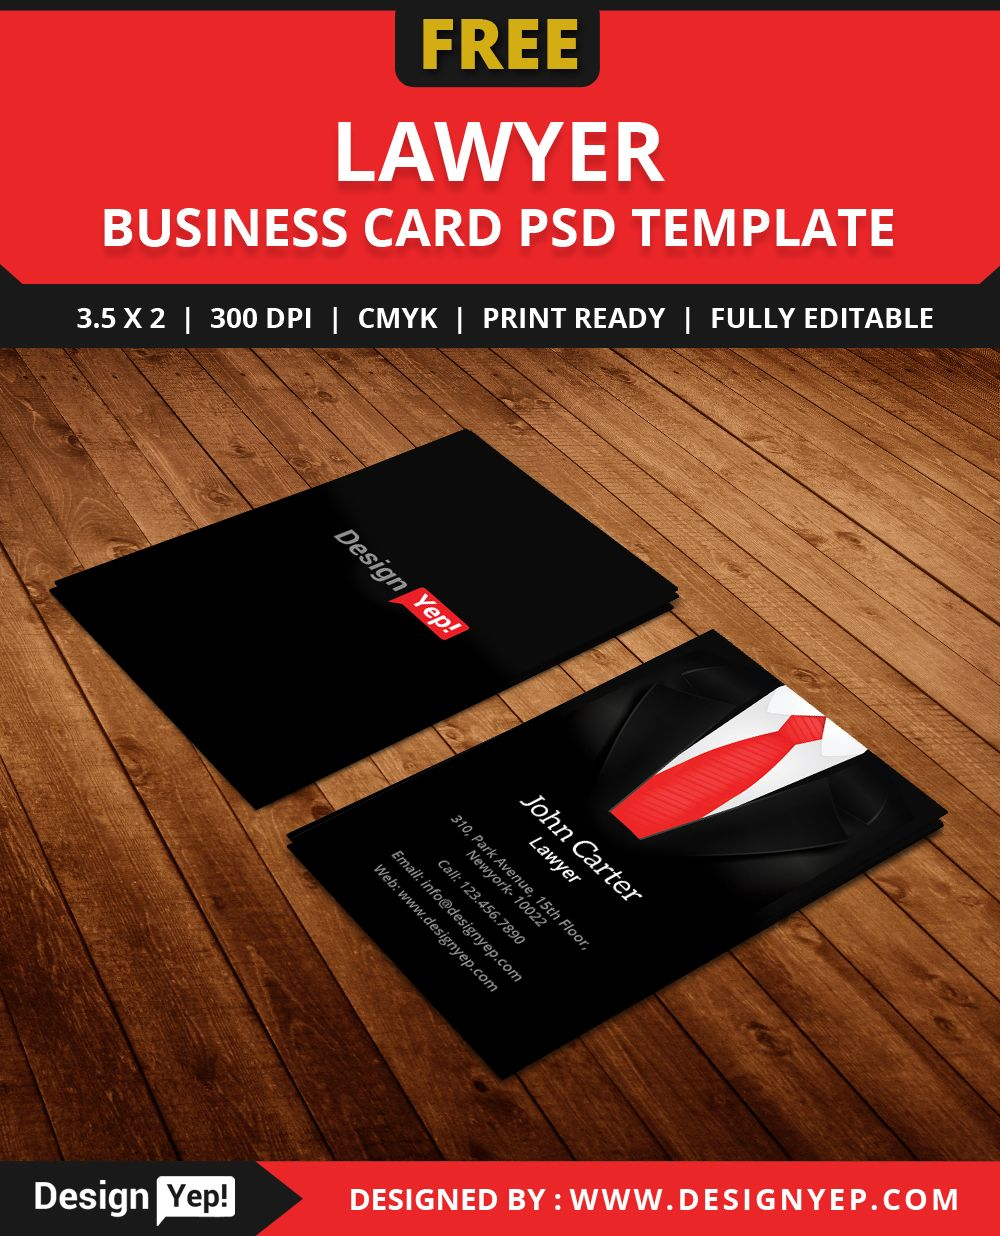 Free-Lawyer-Business-Card-Template-PSD | Free Business Card ...